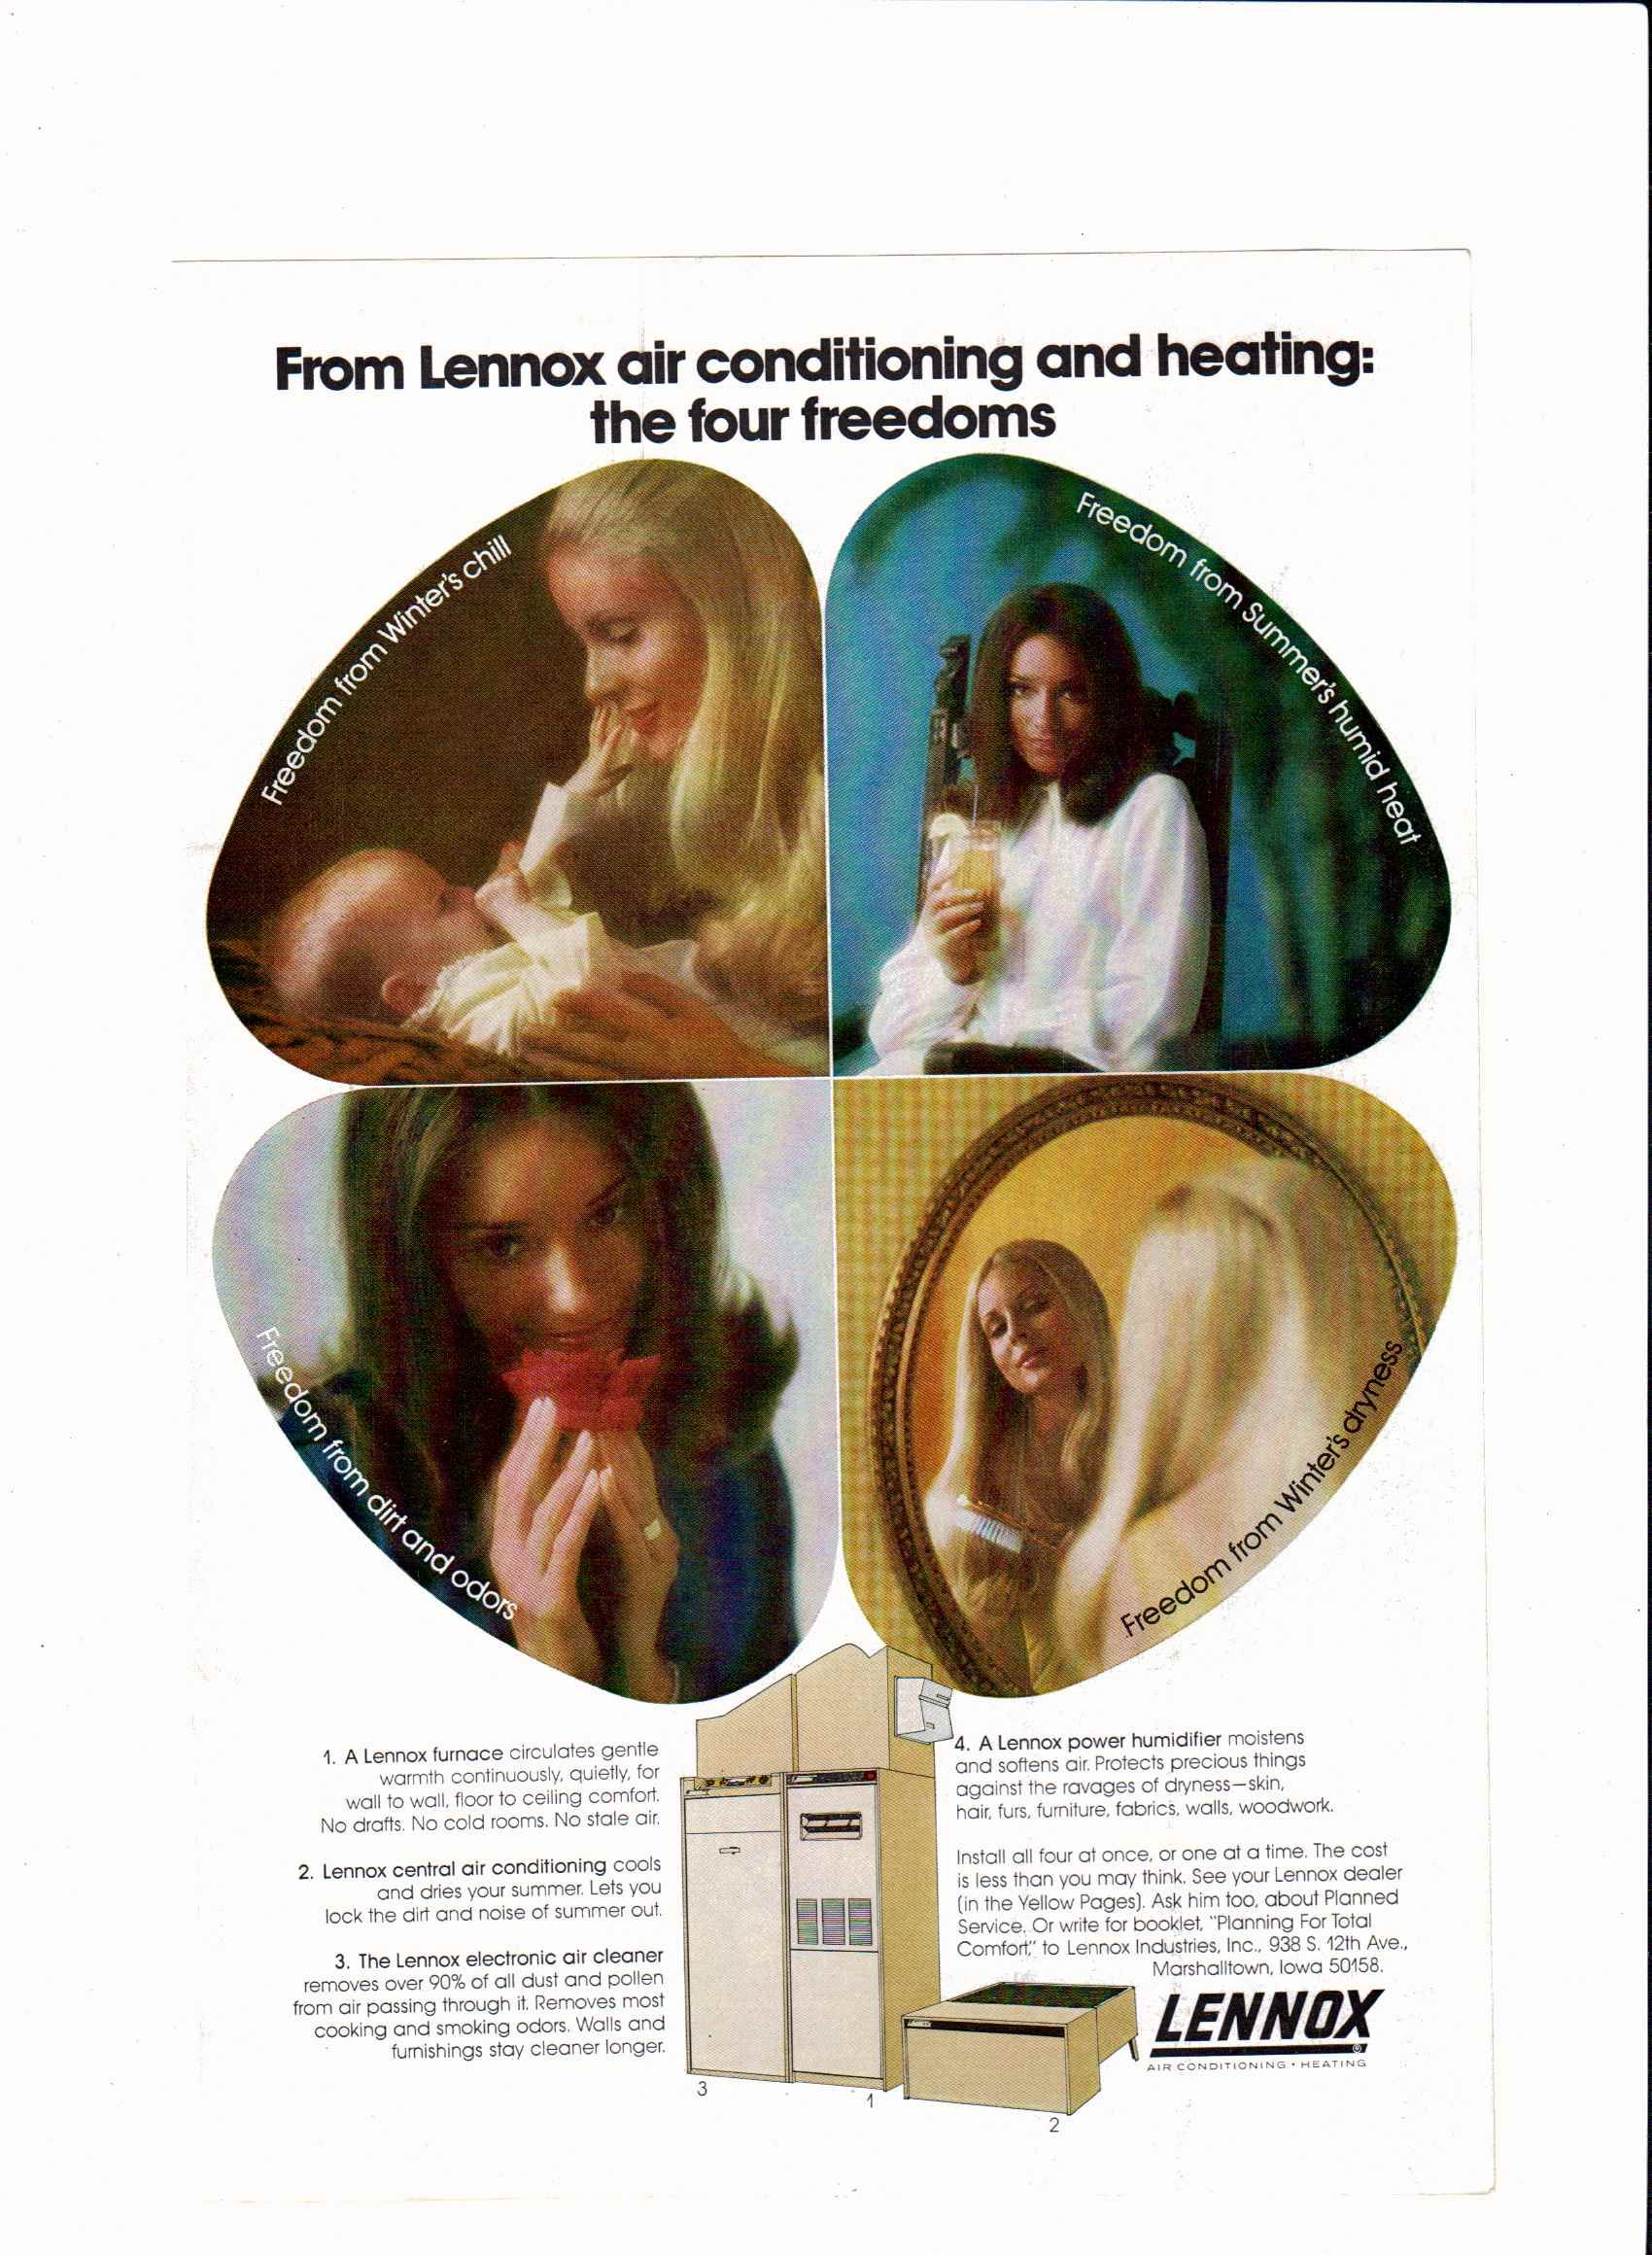 1971 Lennox Air Conditioning And Heating Ad National Geographic